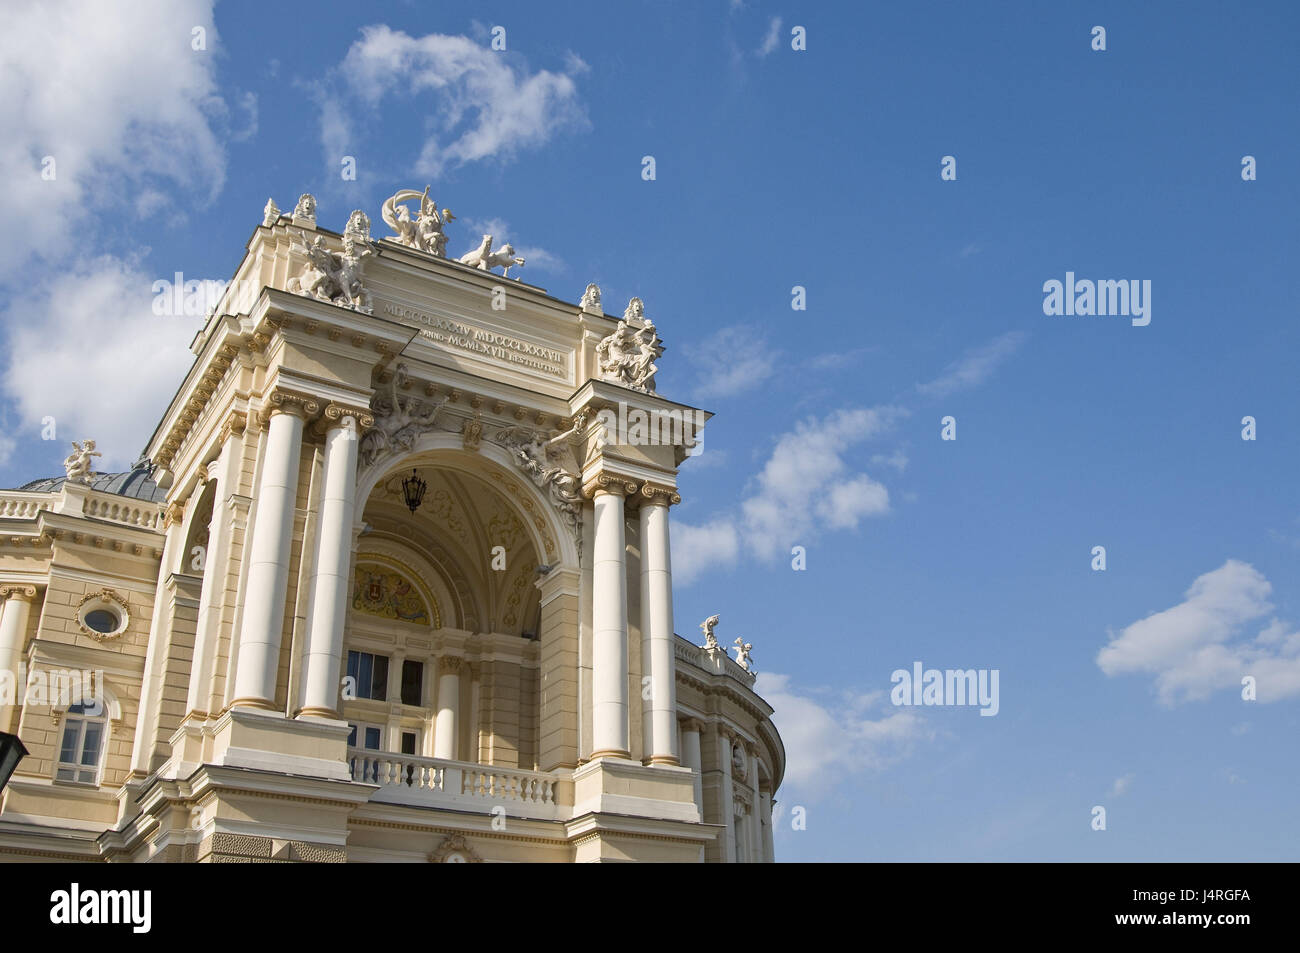 Gable of the opera-house in Odessa, - Stock Image